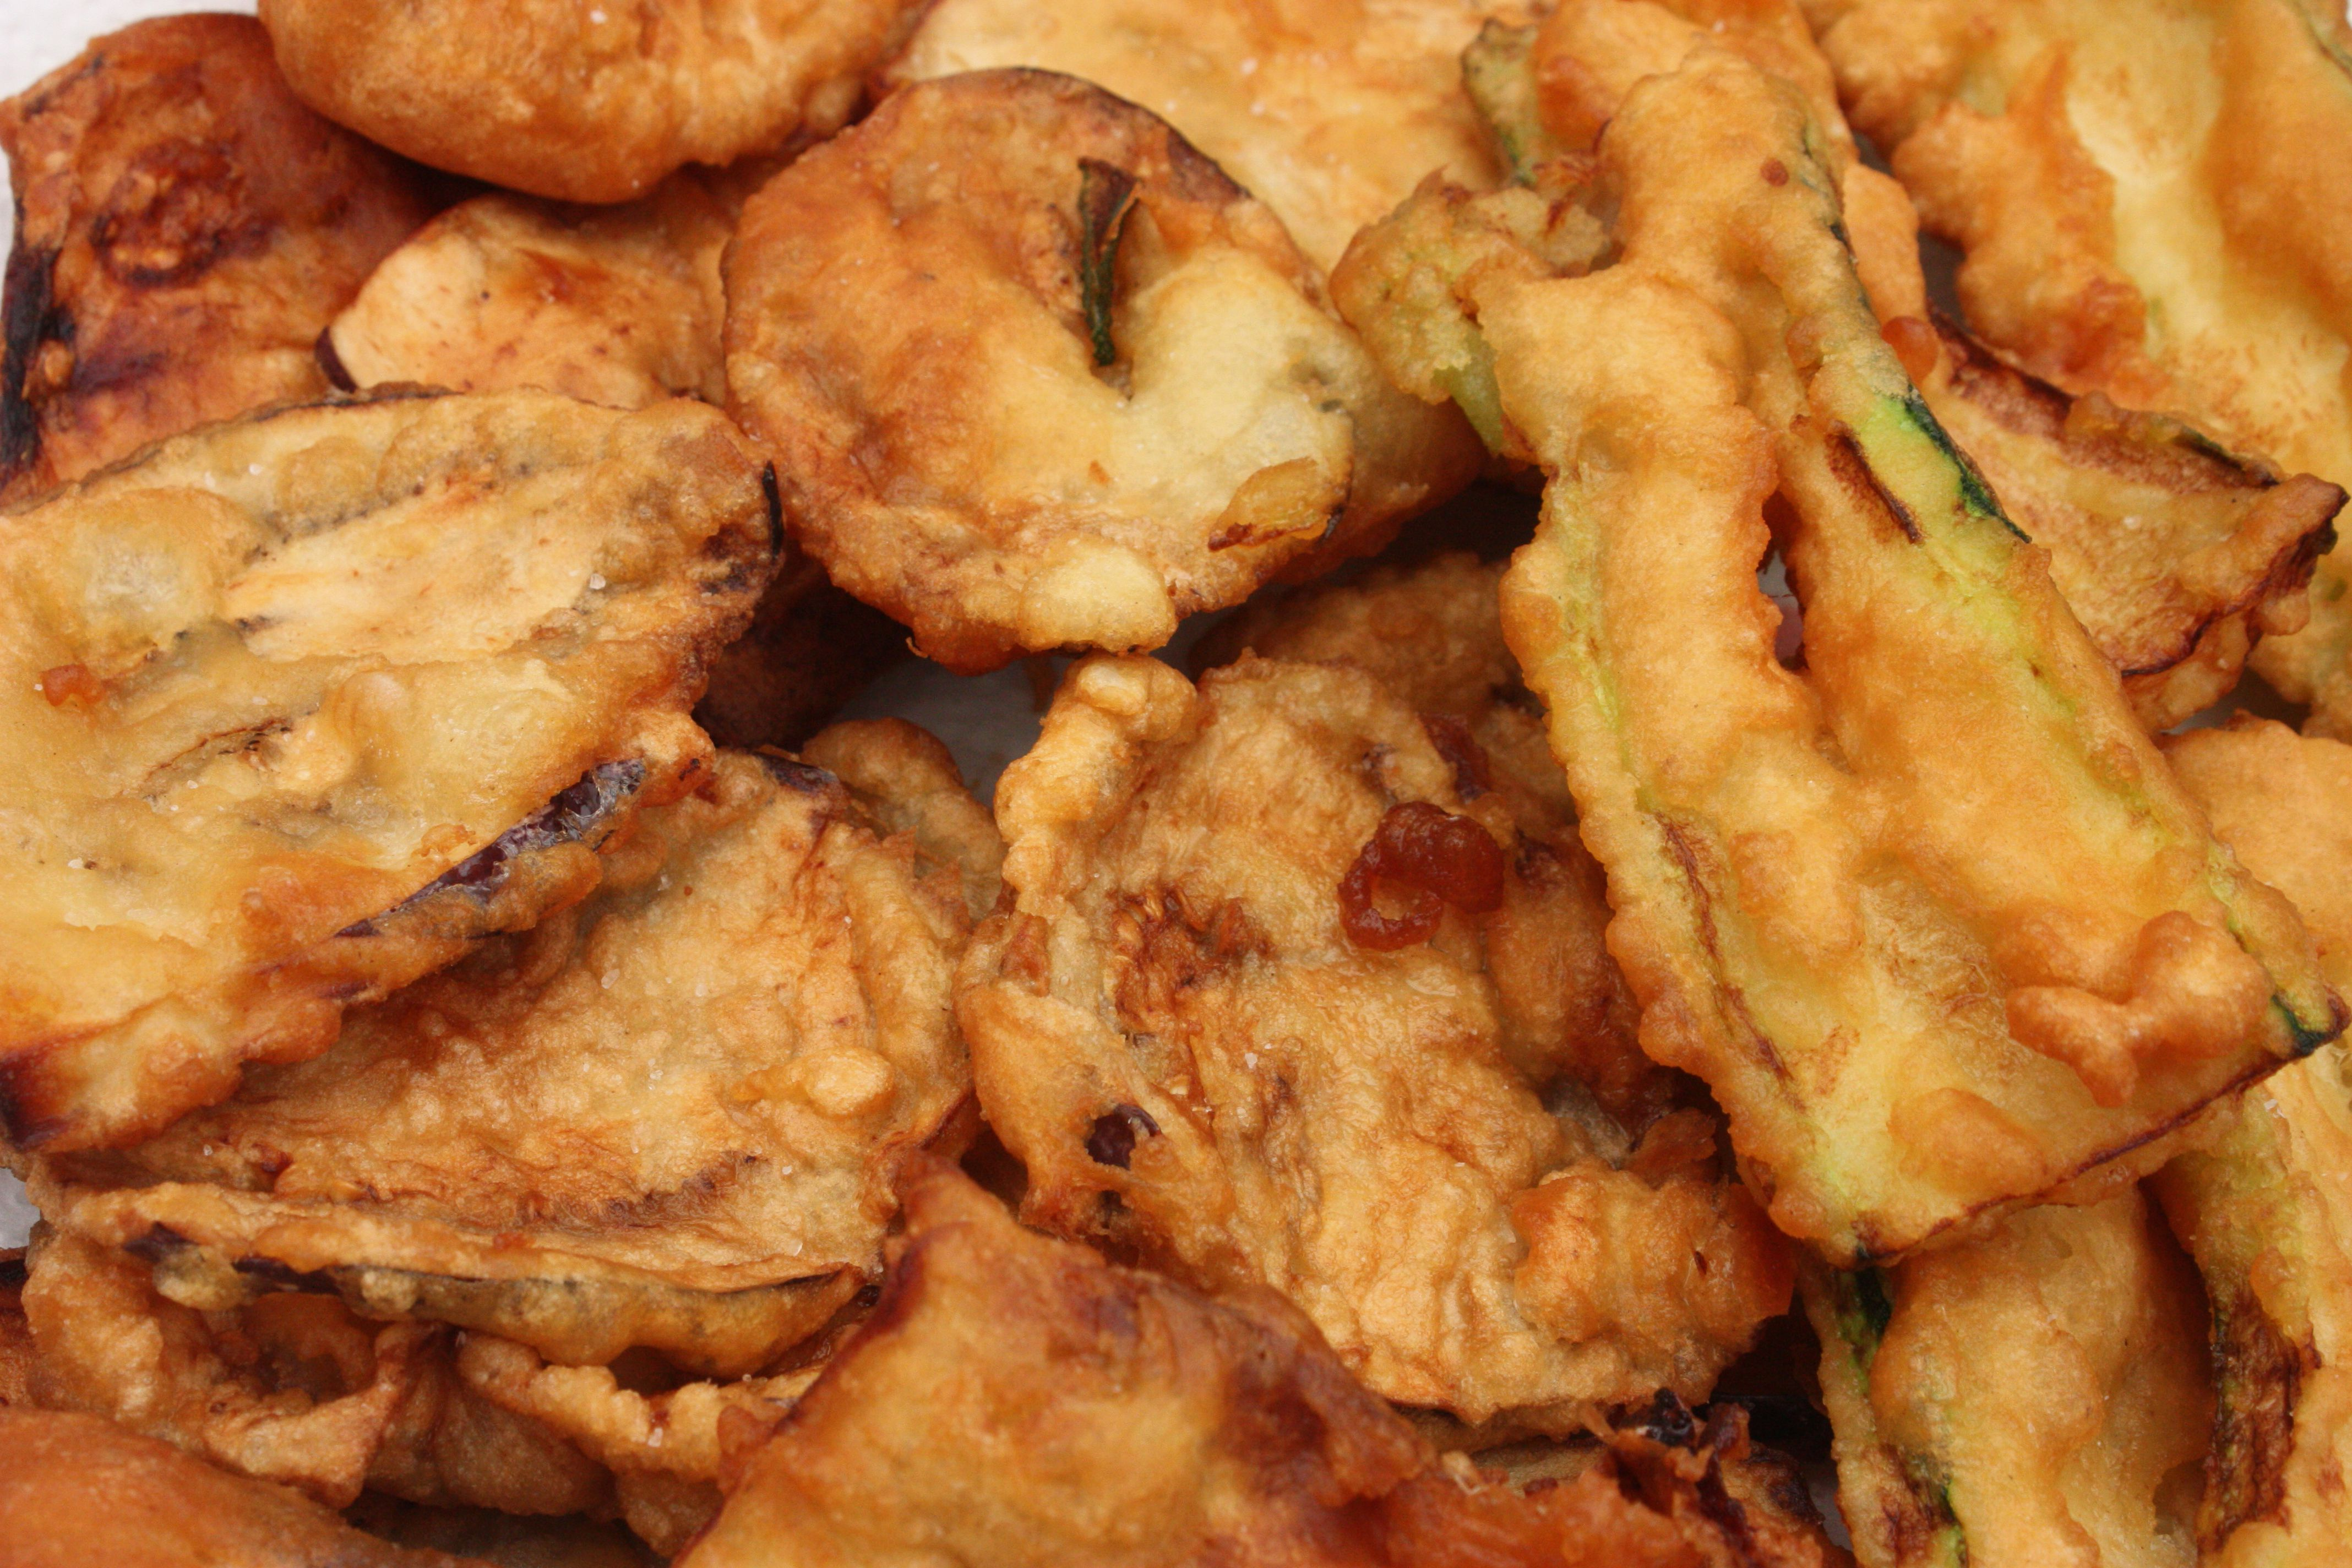 Zucchini and eggplant fritters